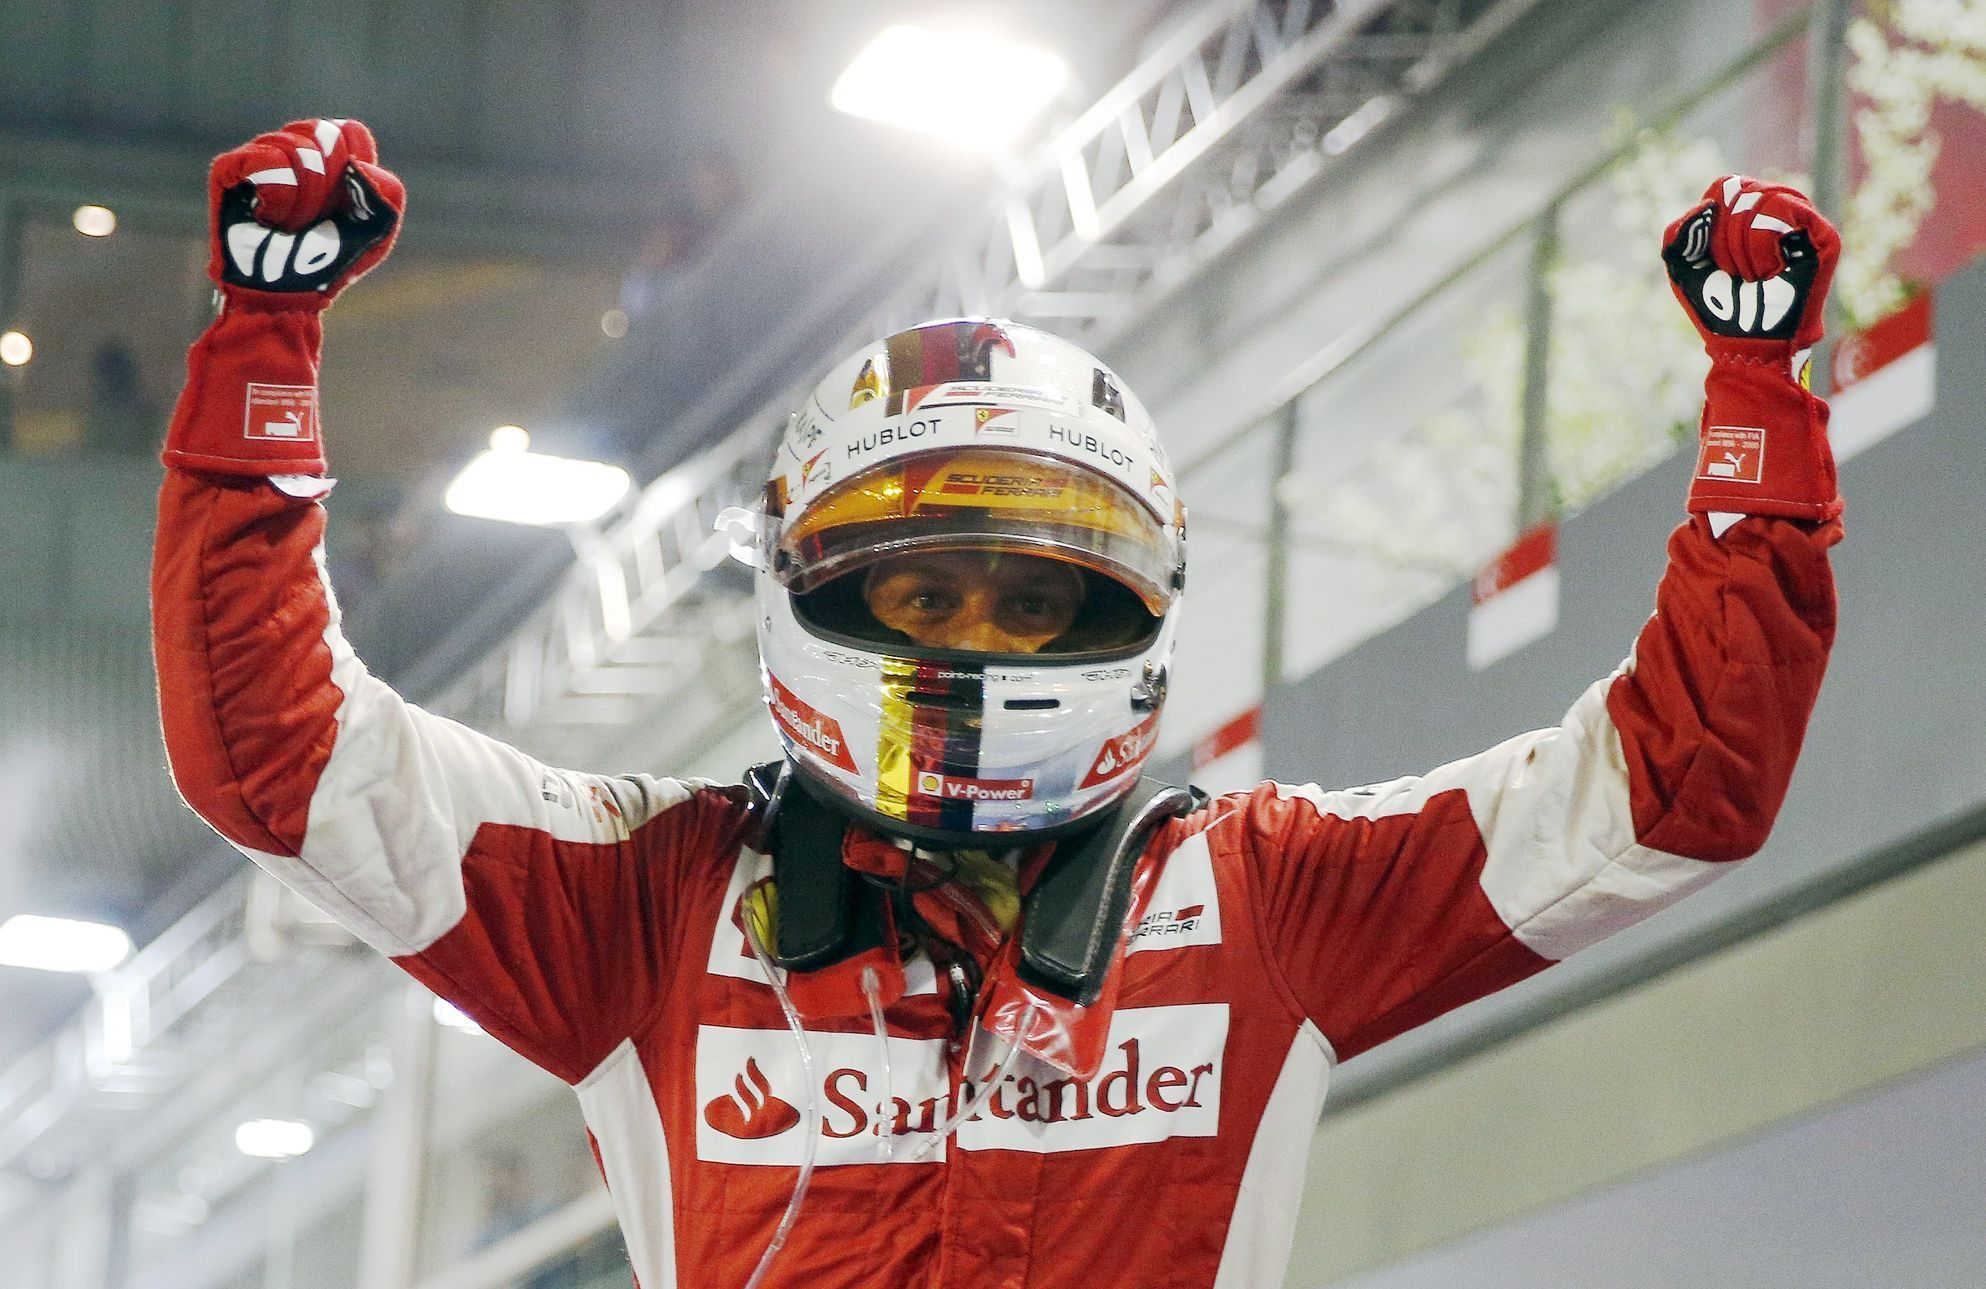 Ferrari Formula One driver Vettel of Germany reacts after winning the Singapore F1 Grand Prix